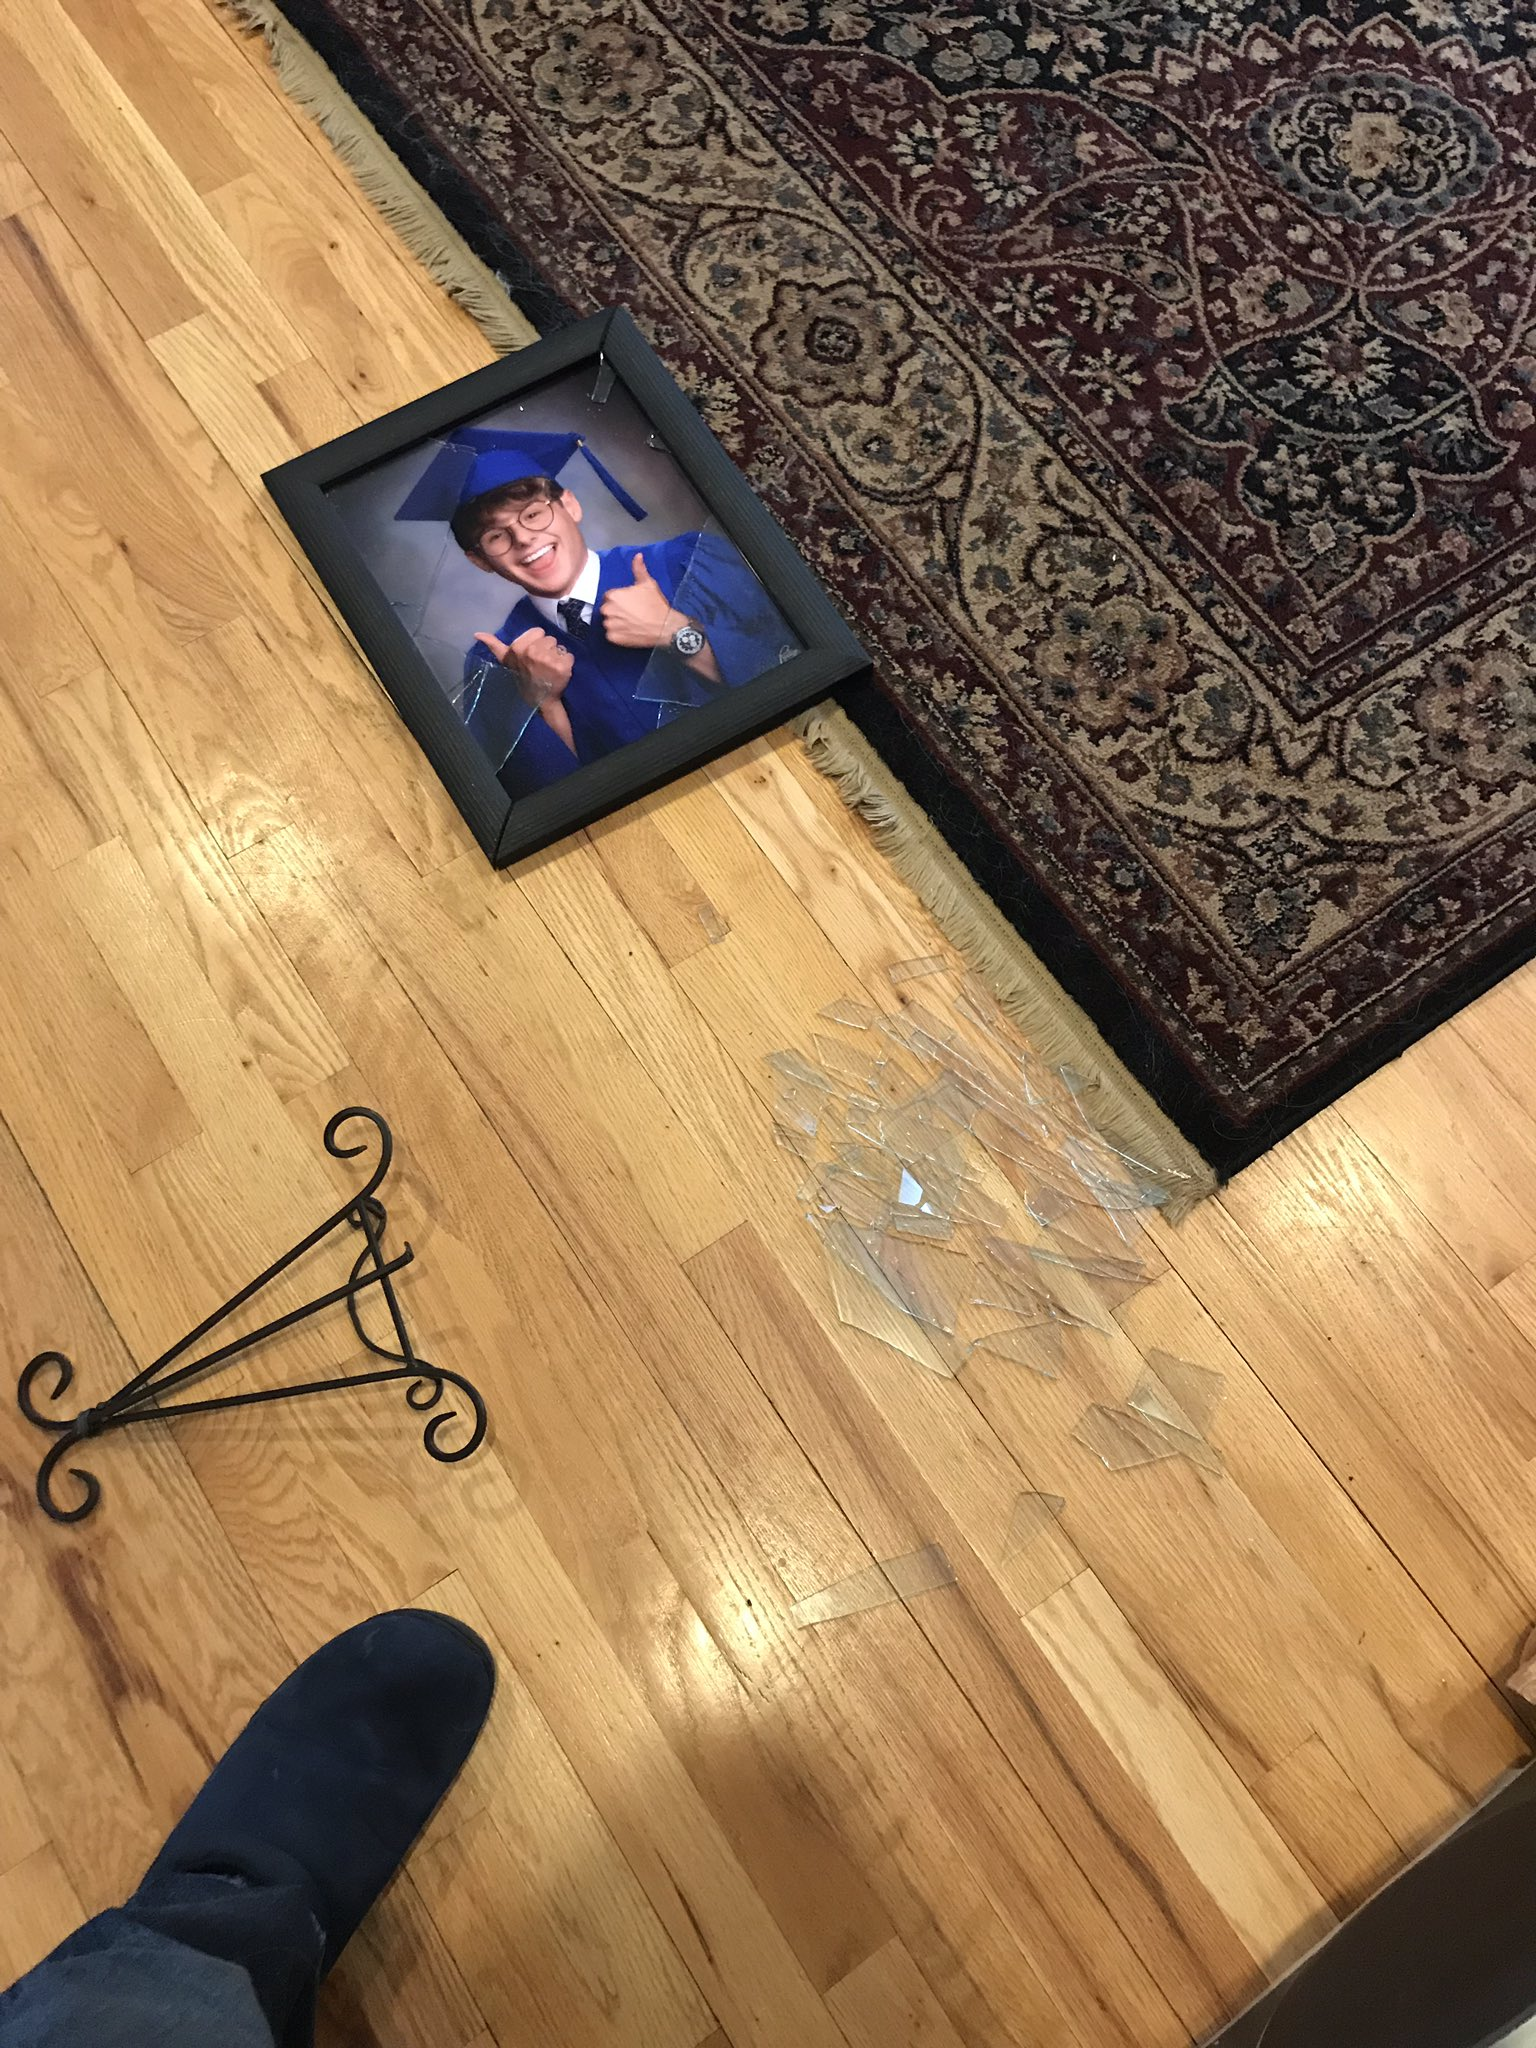 he smashed a photo of me. not sure if this means he misses me or hates me. https://t.co/orCLkXAzPO